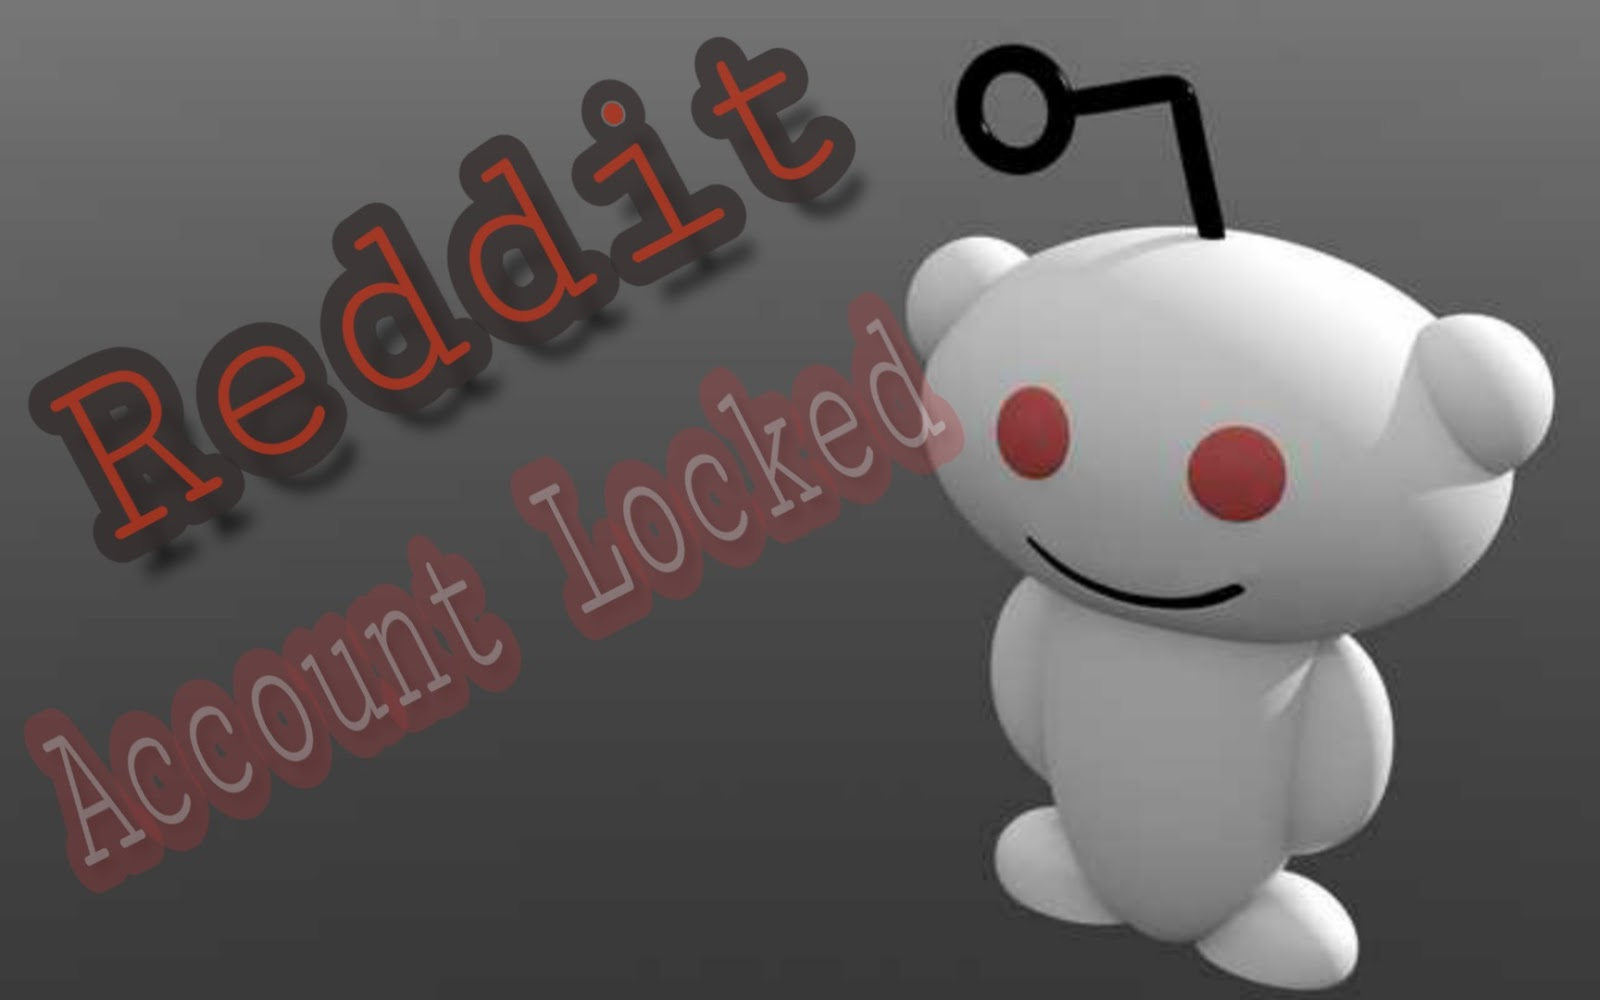 Reddit Locks Down Accounts After Security Incident - Cyber